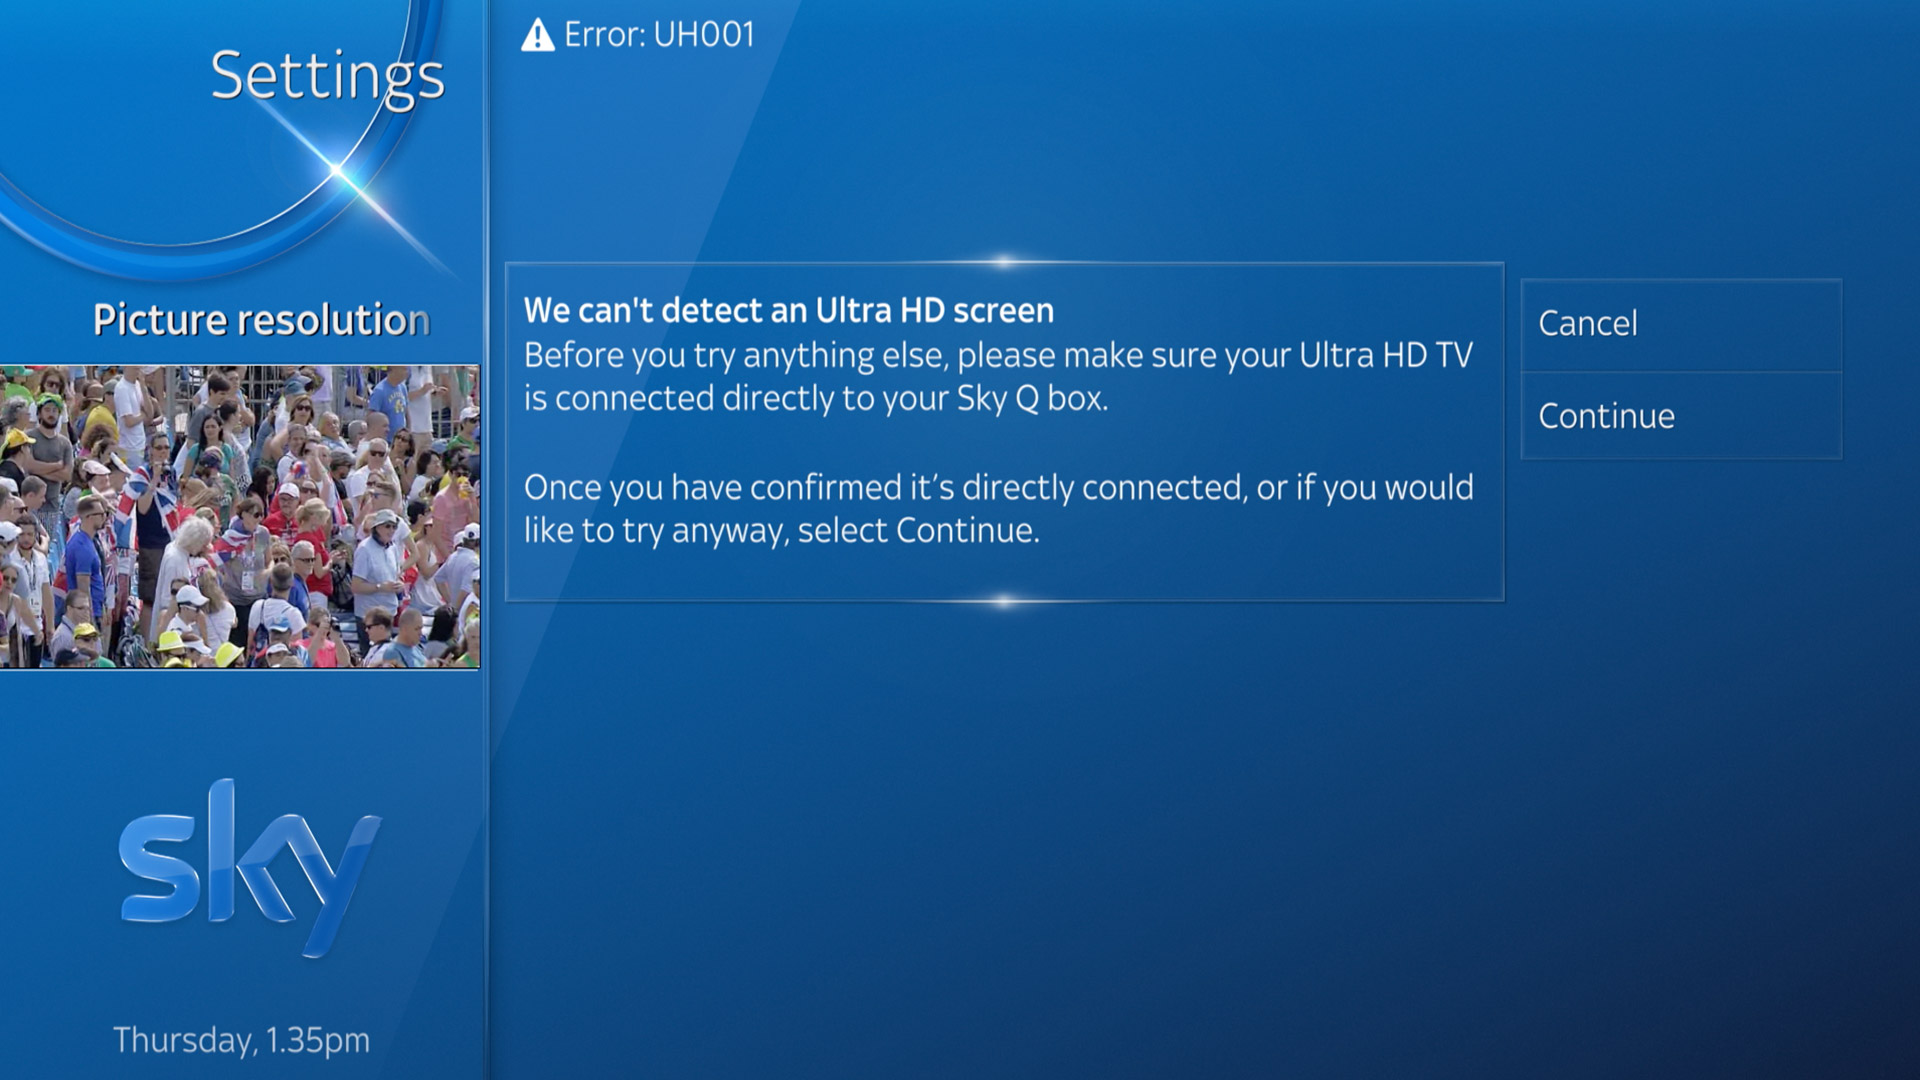 UH001 We can't detect an Ultra HD screen error message